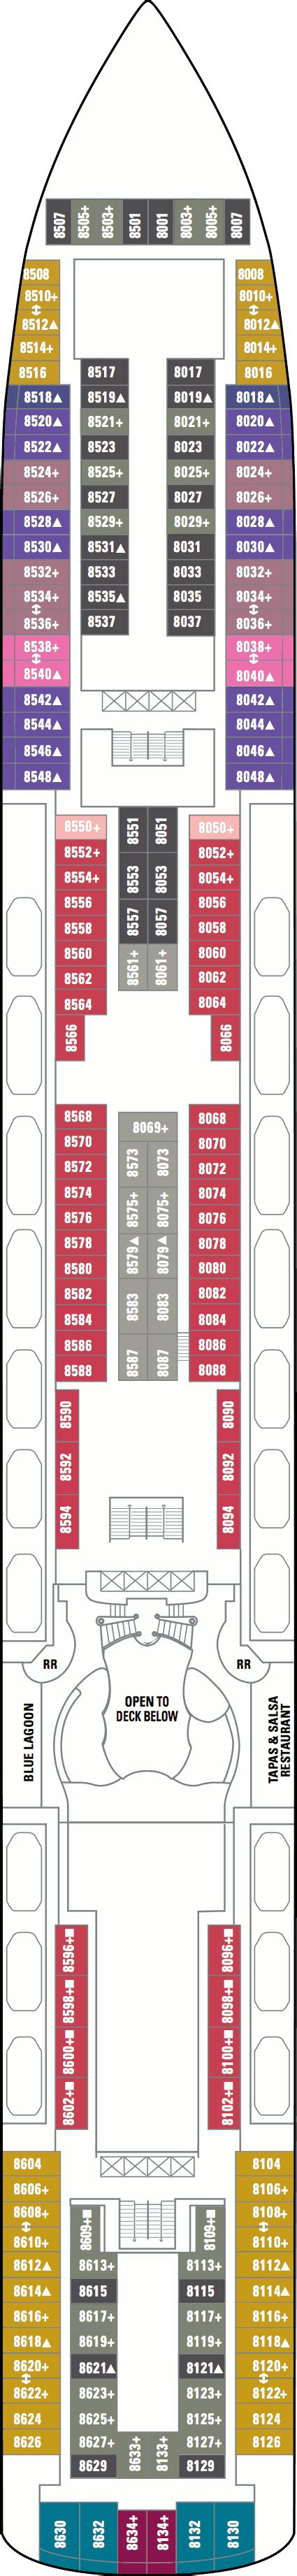 norwegian jewel floor plan norwegian jewel deck plans